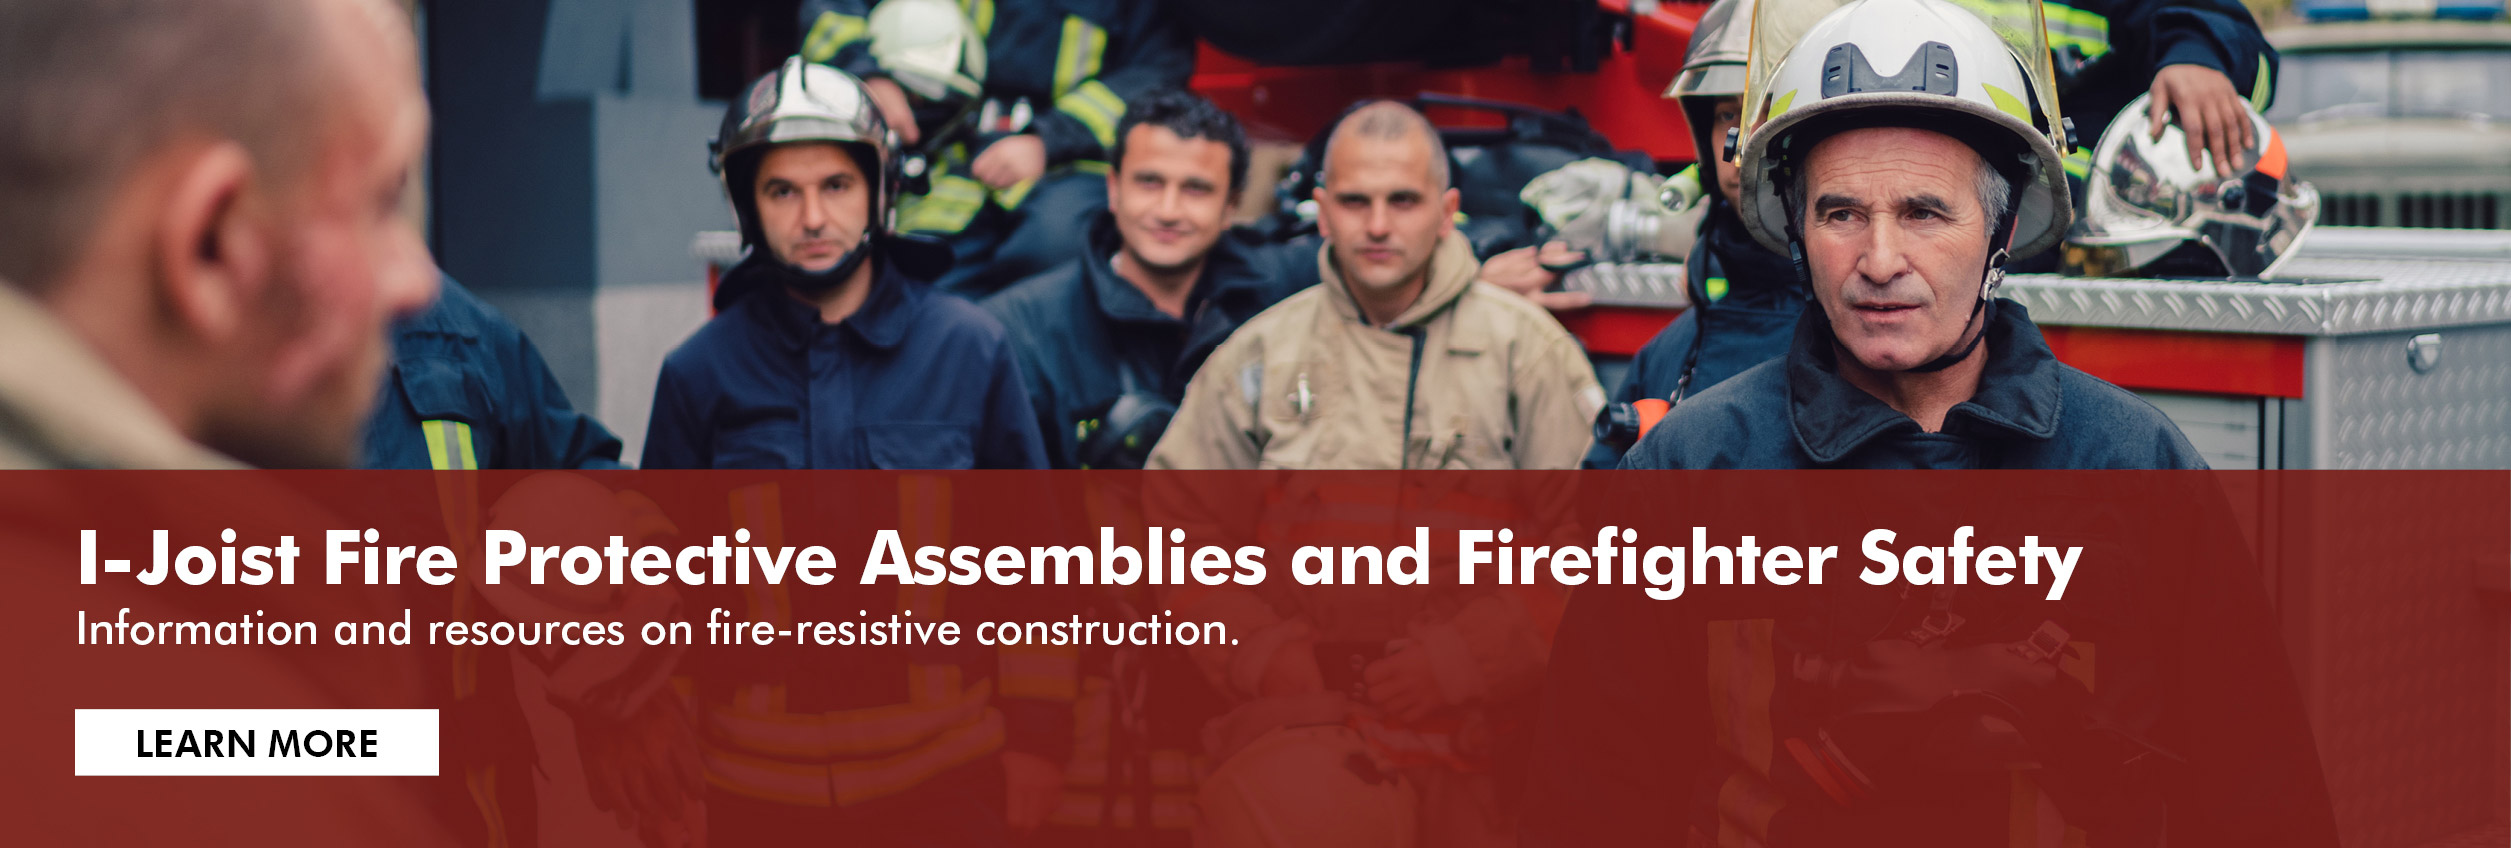 Fire-Protective Assemblies and Firefighter Safety